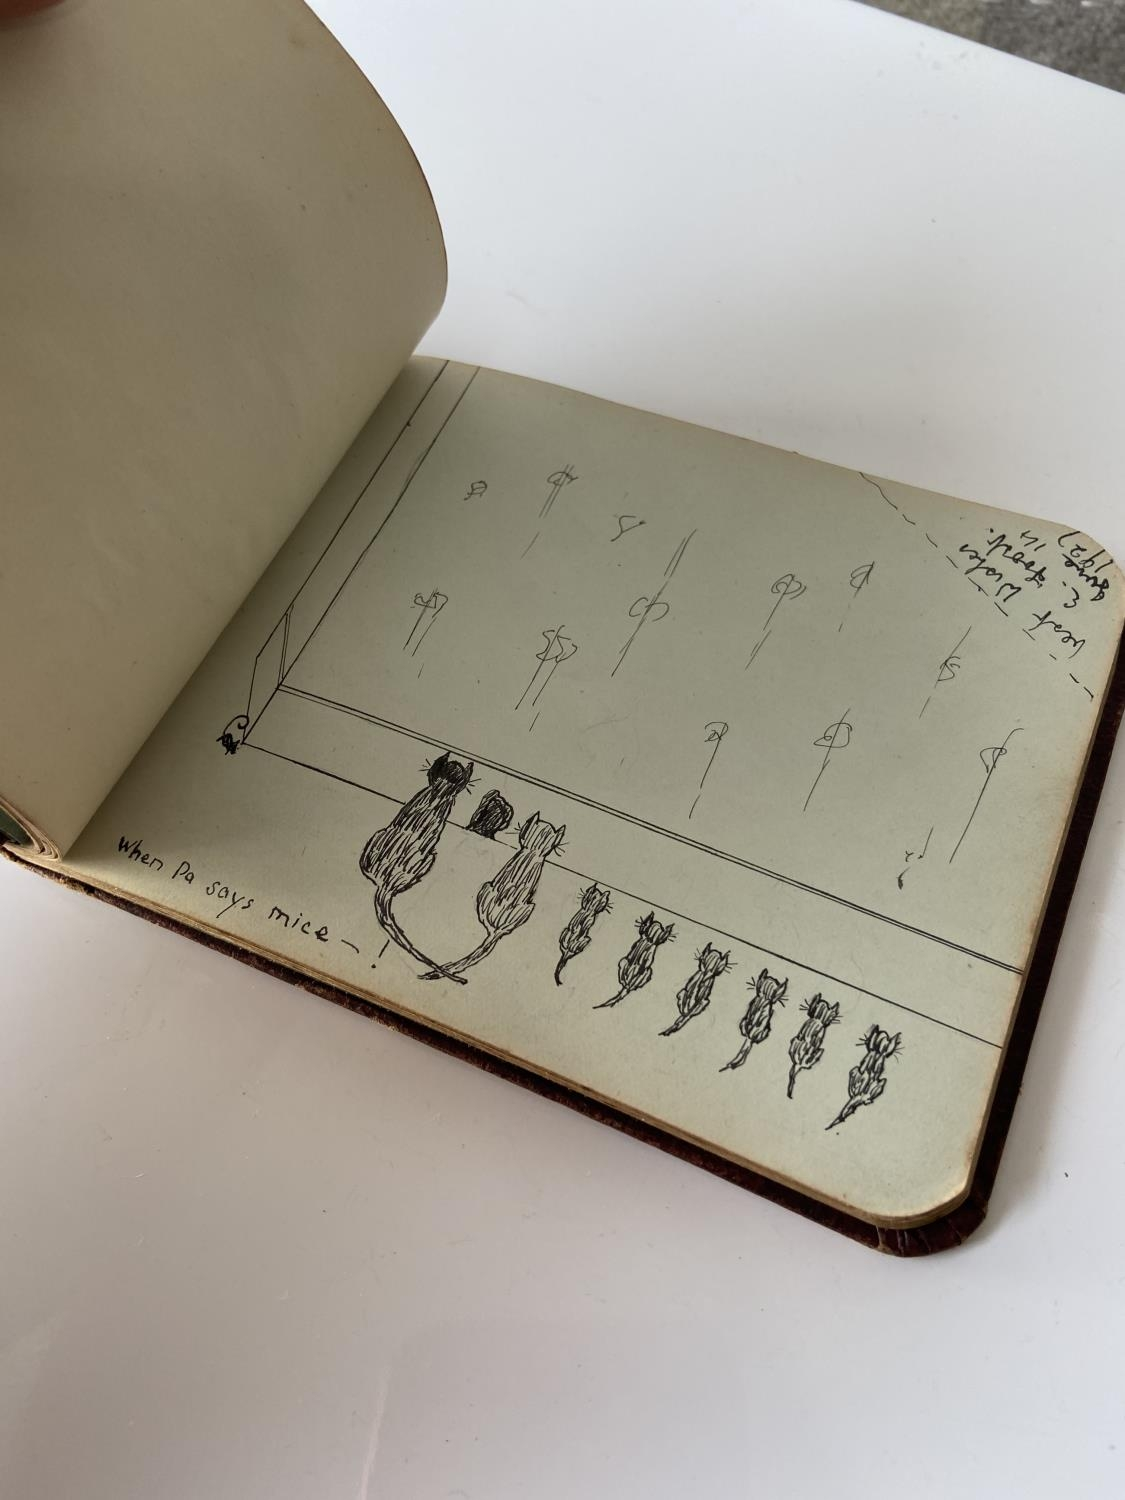 An old autograph album containing various poems, sayings & doodles - Image 12 of 18